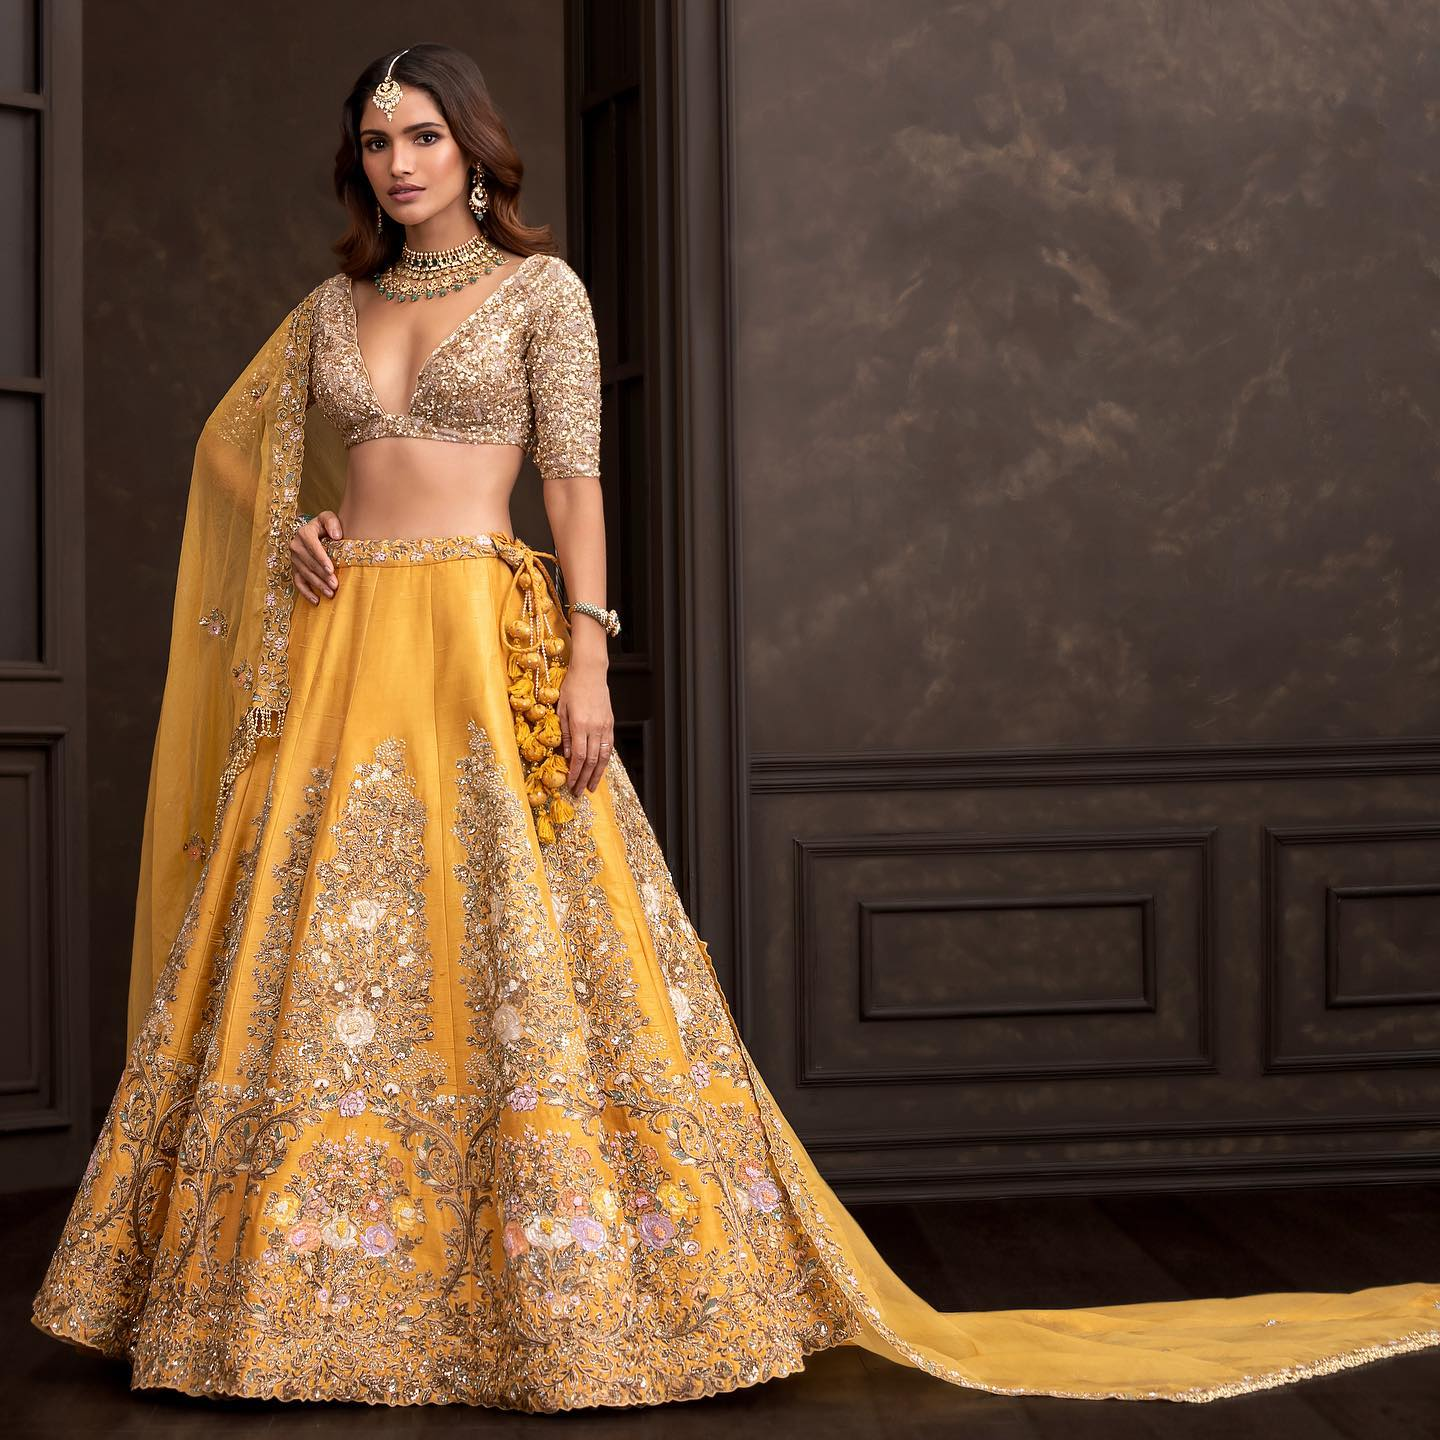 Gorgeous mustard yellow color bridal lehenga and gold sequin blouse  with dupatta. Lehenga with resham hand embroidery work.  2021-10-16